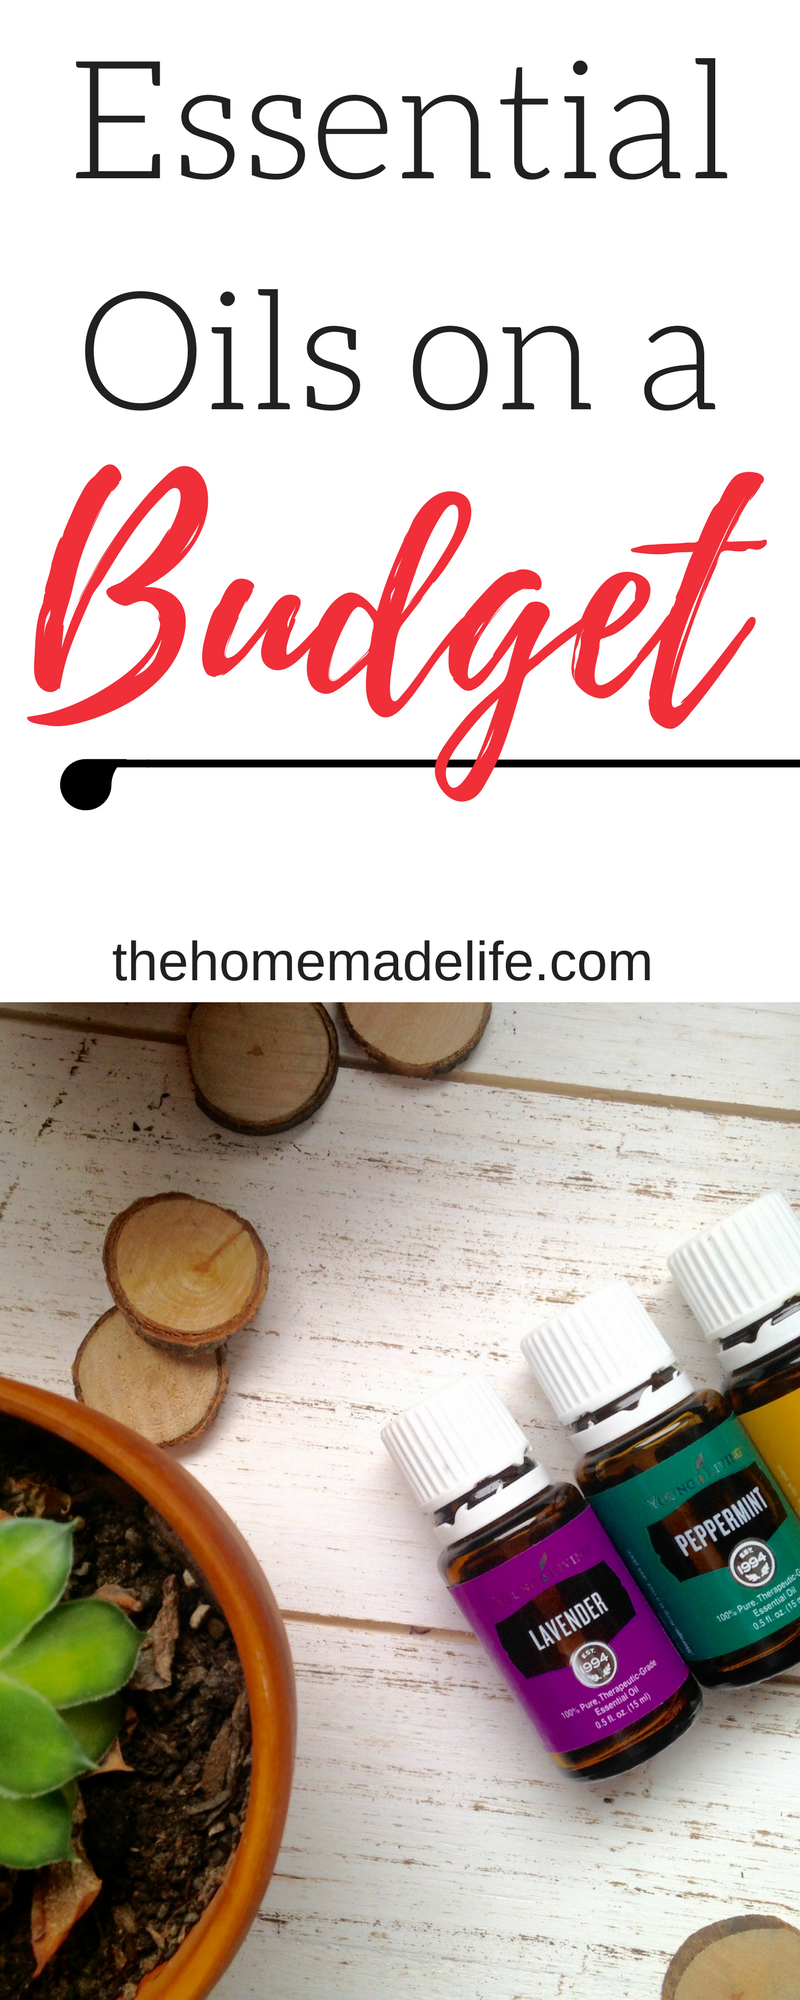 How to buy essential oils on a budget (2)